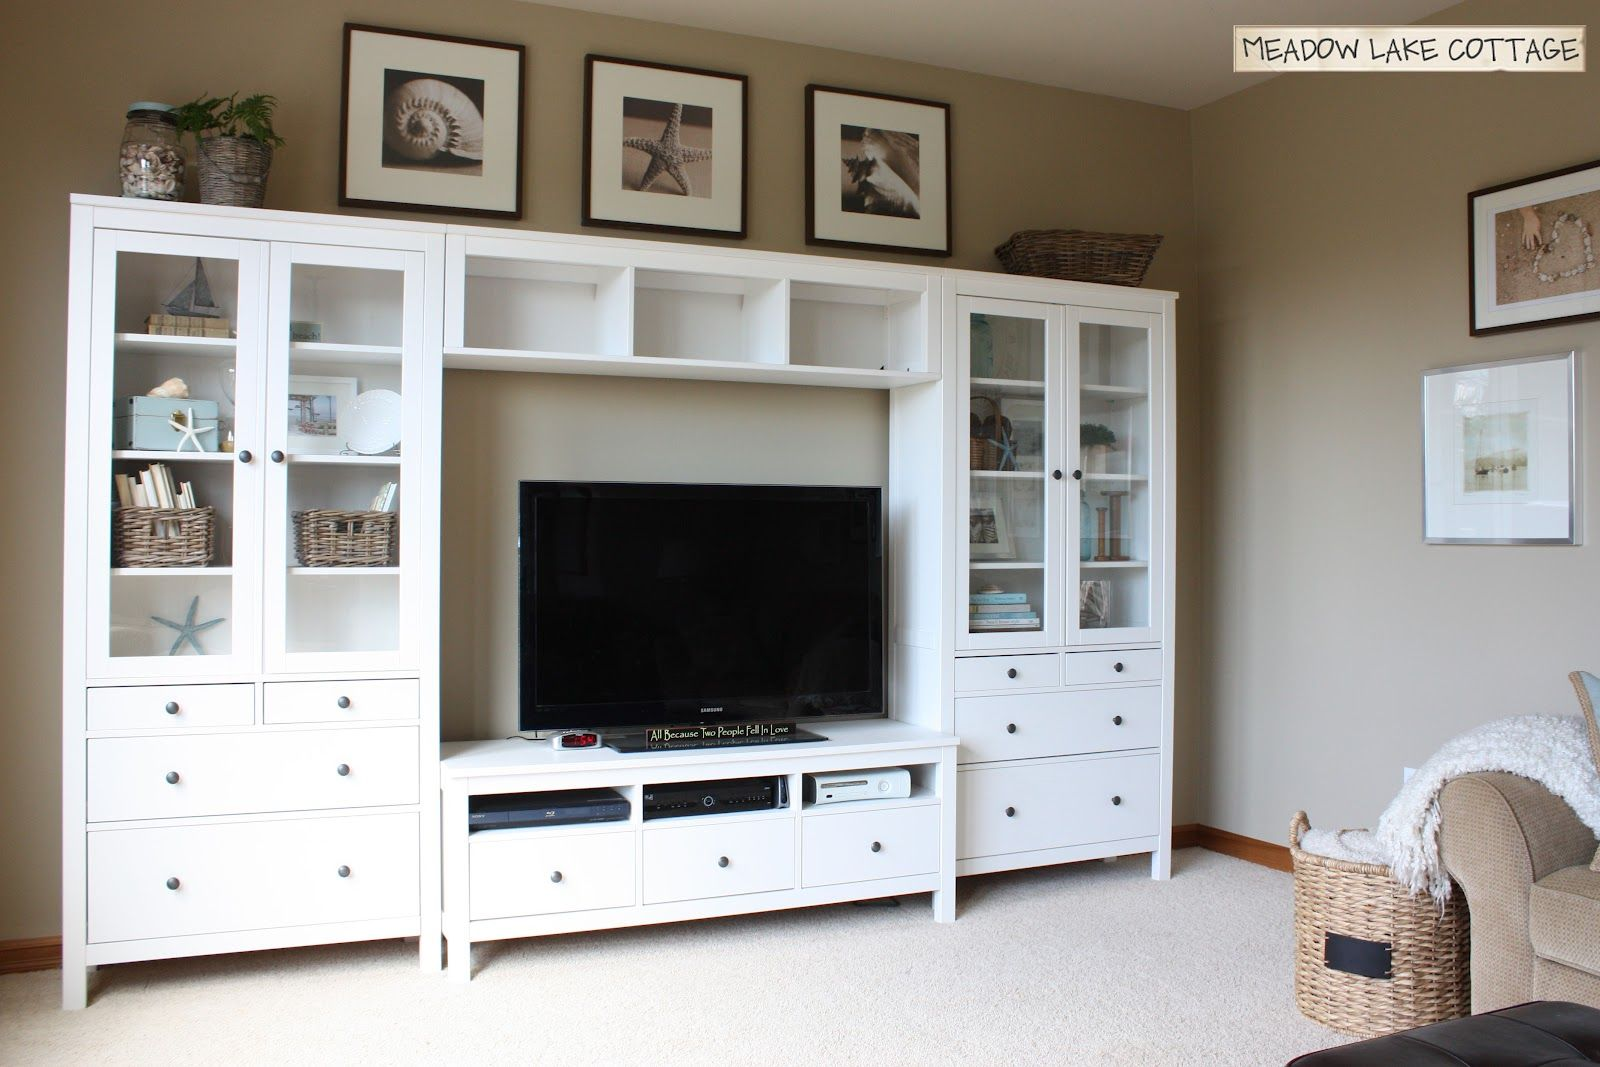 Ikea Tv Unit on Pinterest Leather